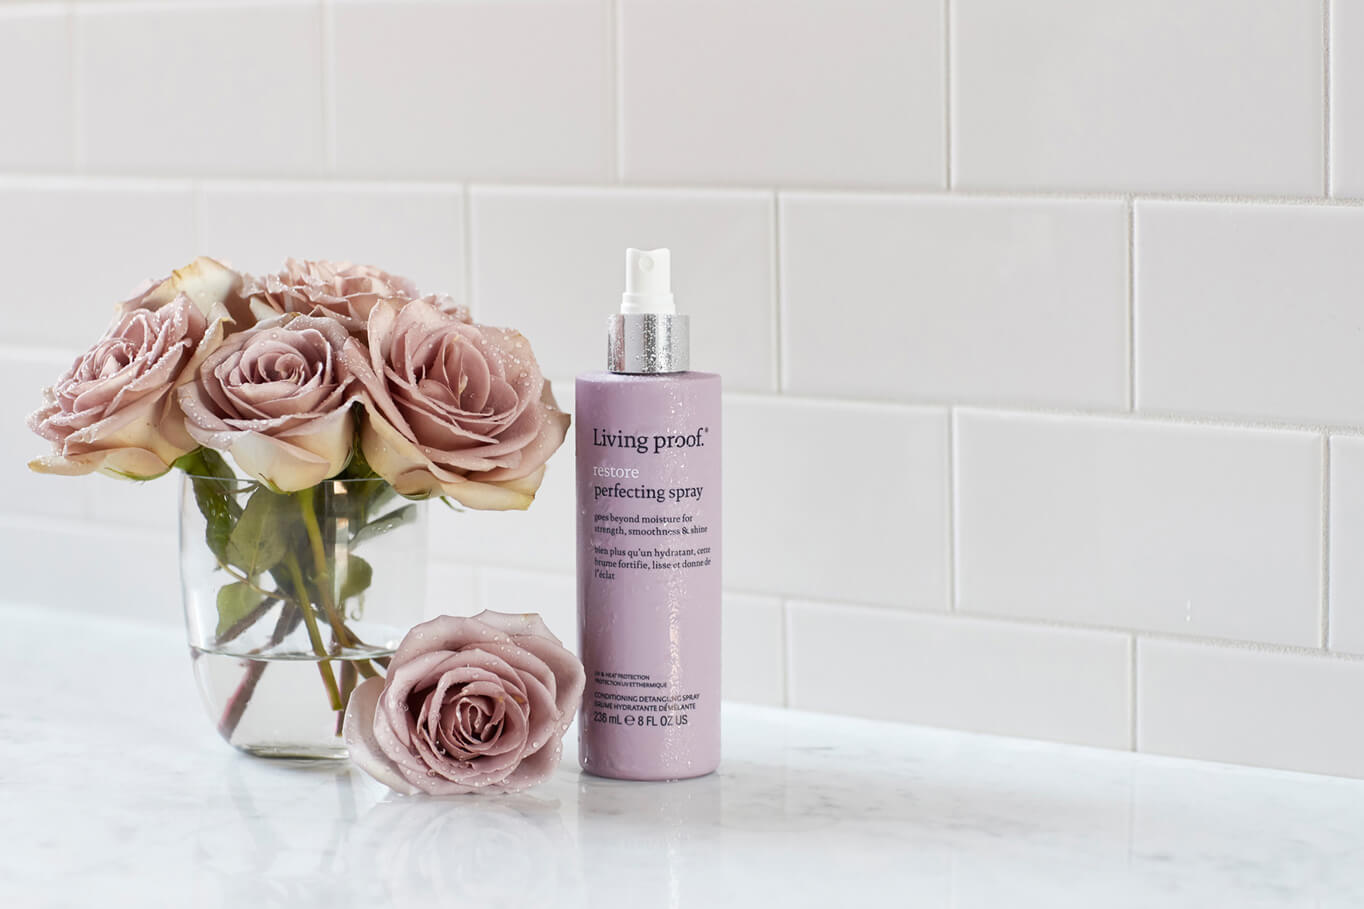 LP_PerfectionSpray_Glycerin_Roses_Bathroom_4563_R2